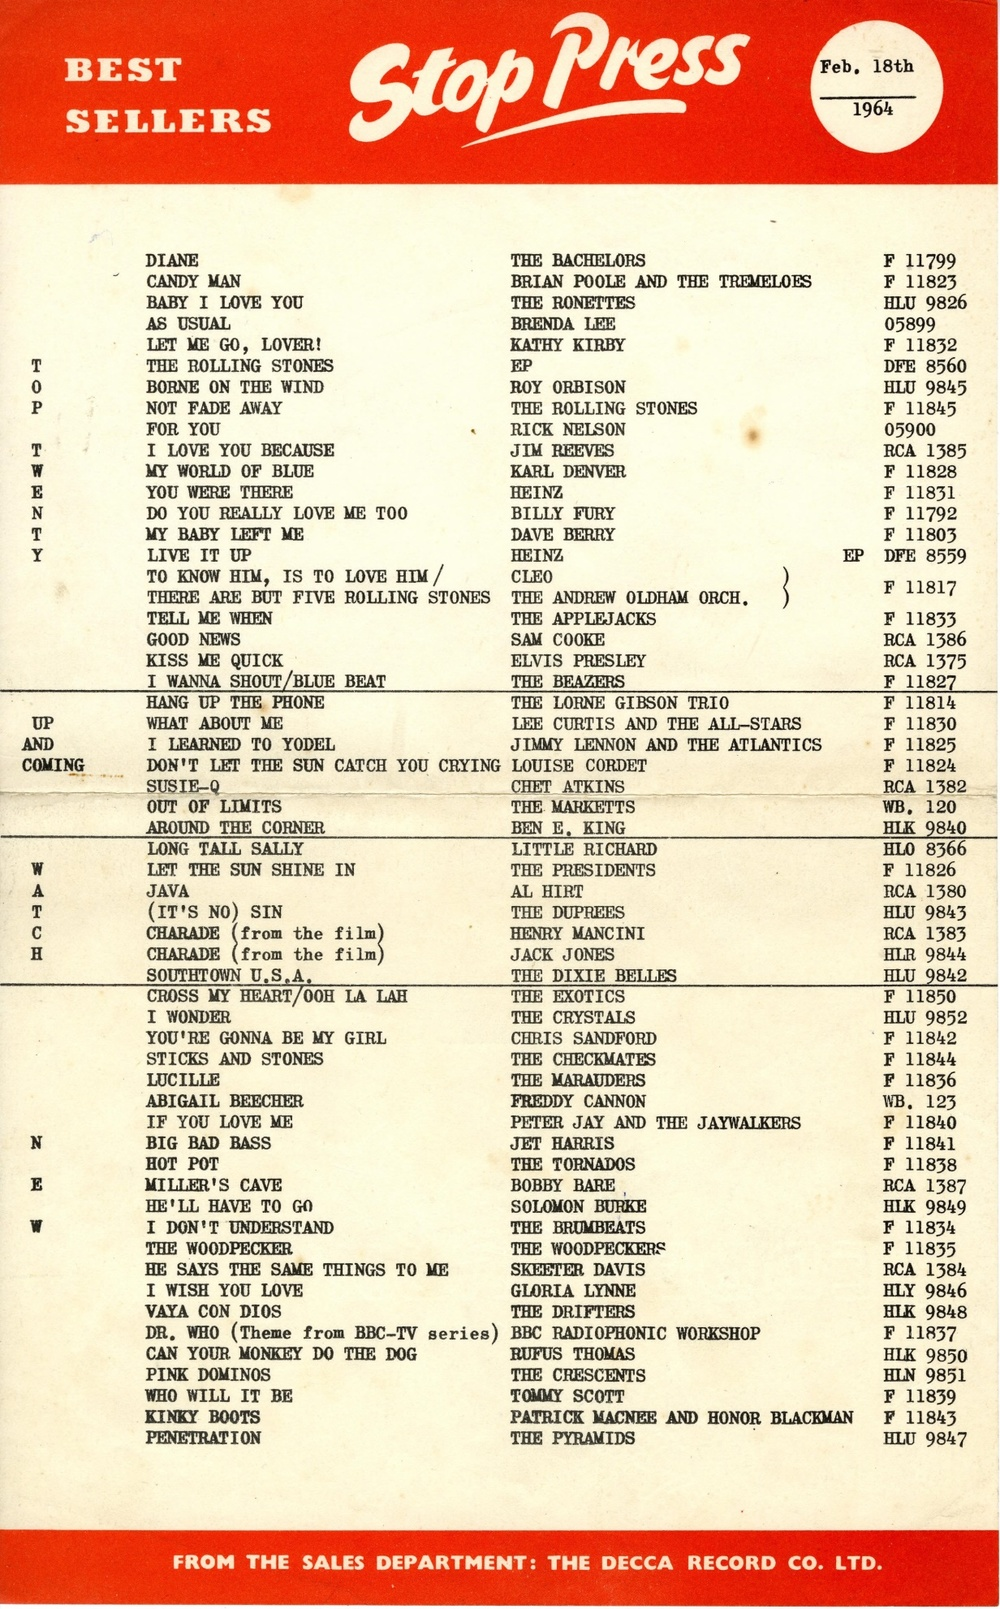 Decca Record Co. Ltd., Press release listing the Doctor Who theme from the BBC Radiophonic Workshop, 18 February 1964